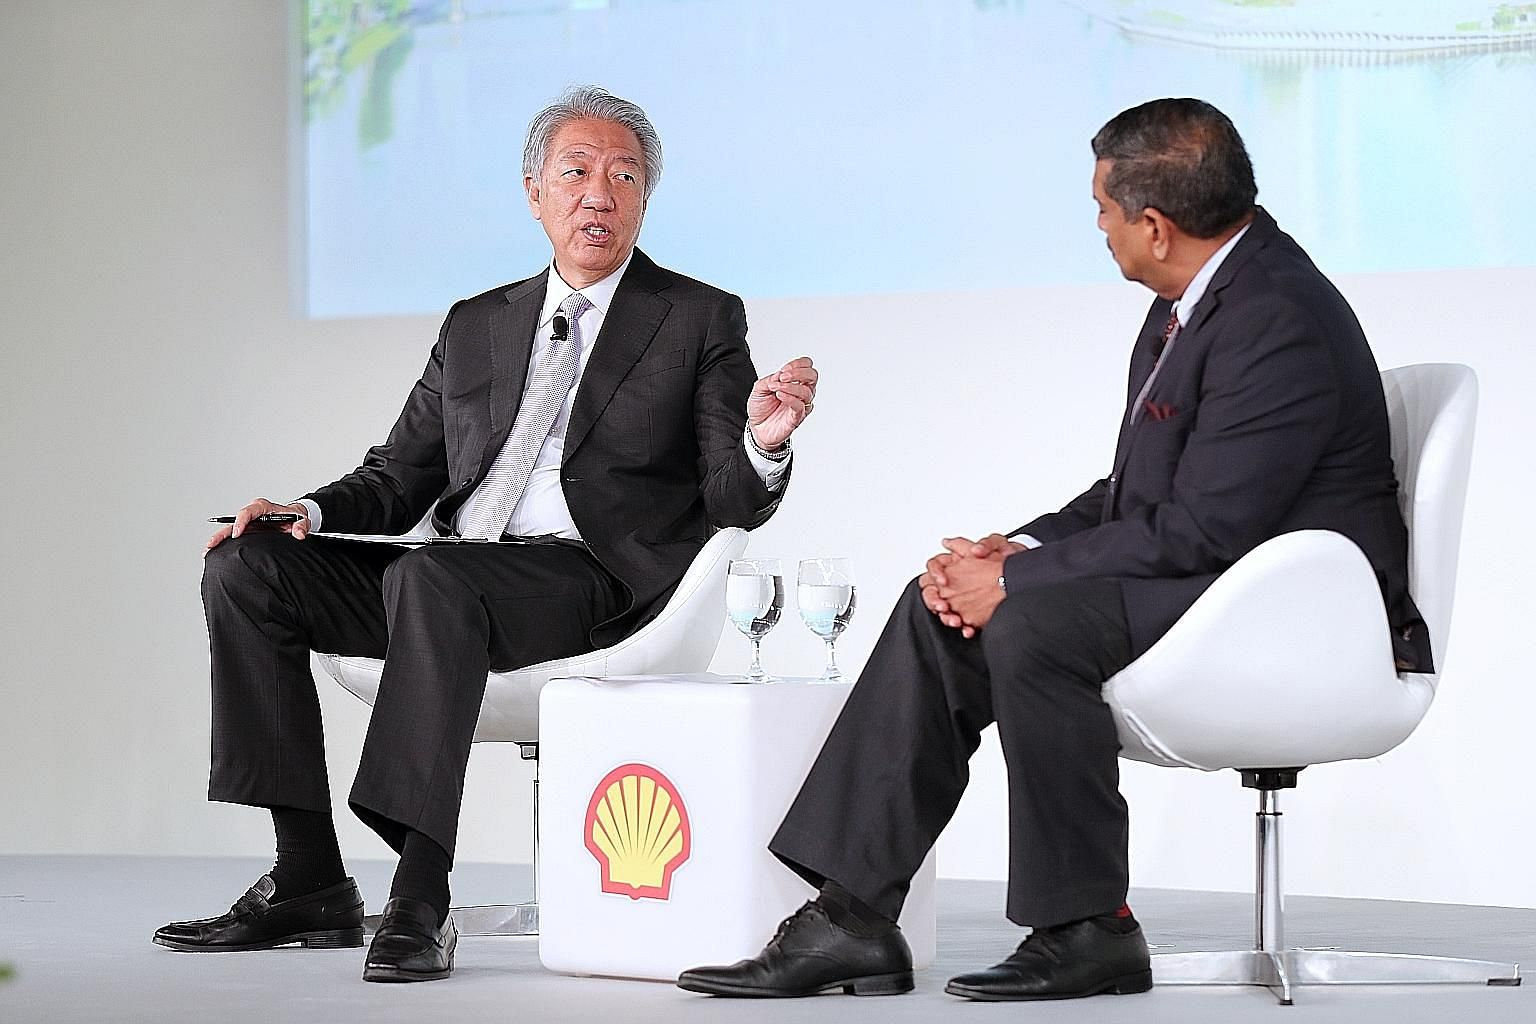 Above: Senior Minister Teo Chee Hean speaking at a dialogue moderated by Strategic Moves chief executive Viswa Sadasivan at the Shell Powering Progress Together Forum yesterday.